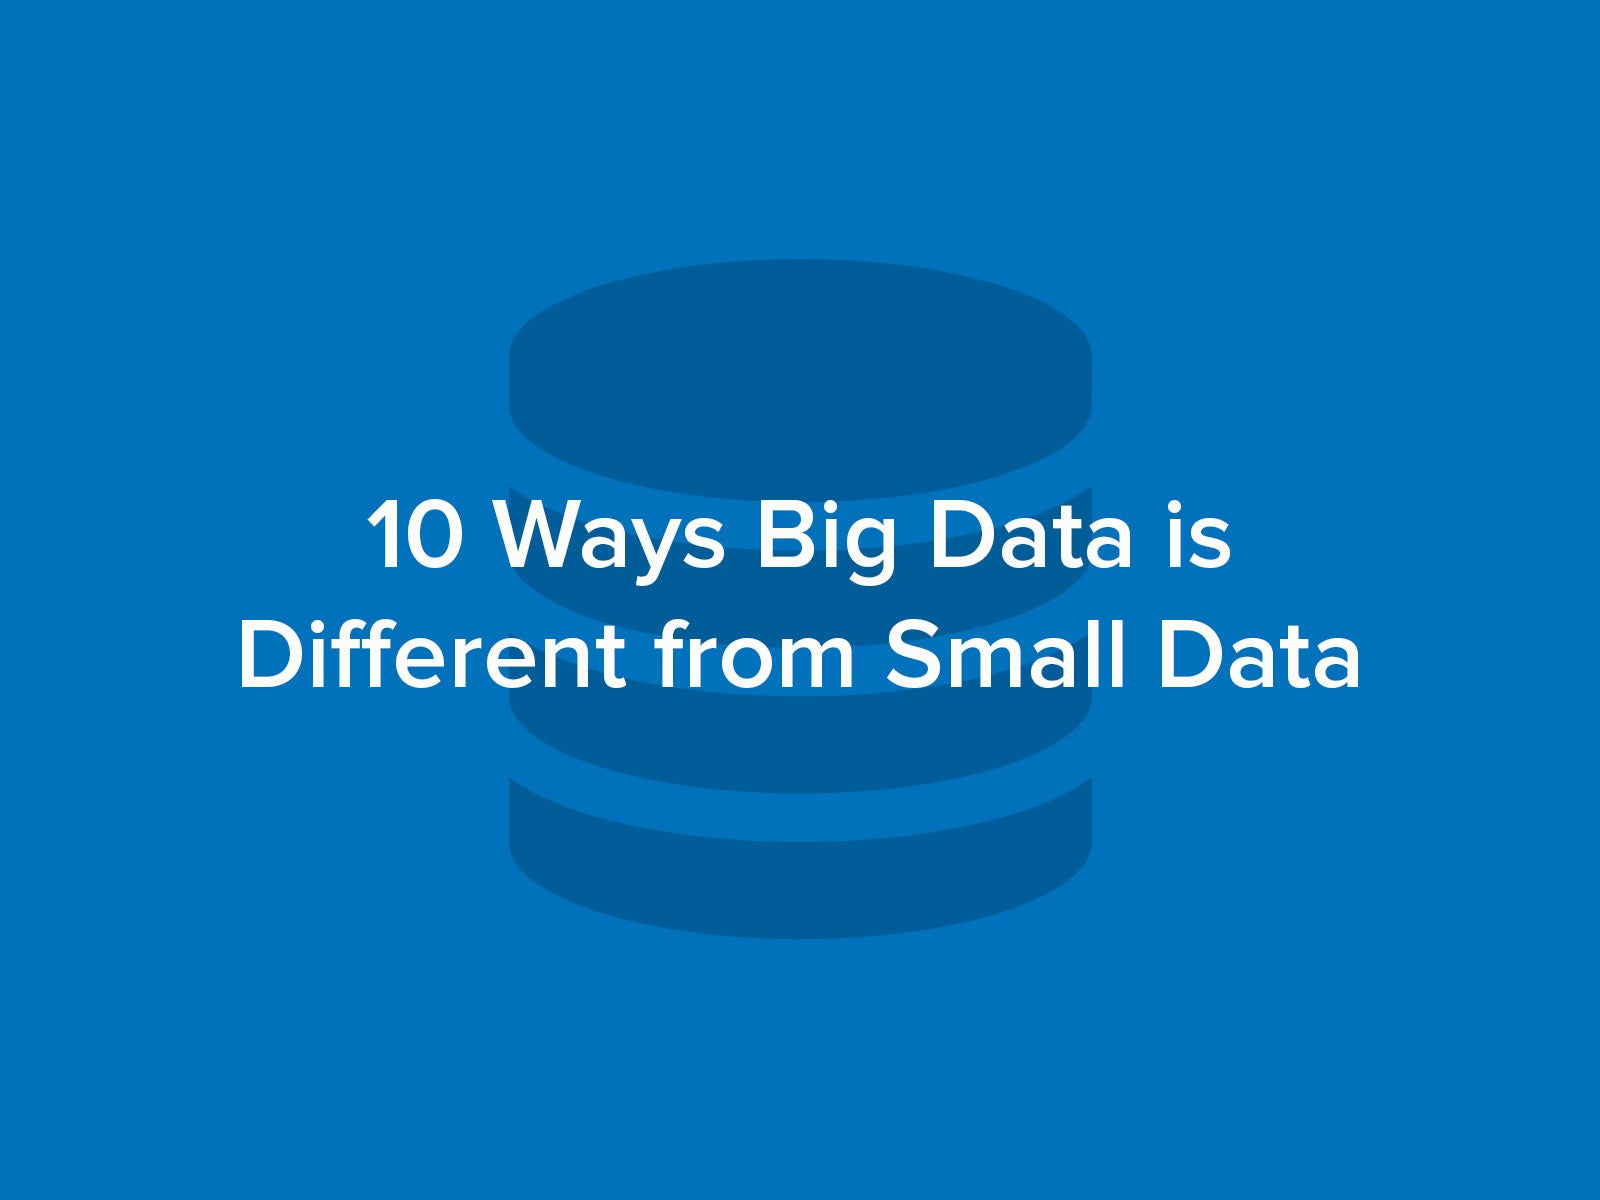 Ten Ways Big Data is Different from Small Data